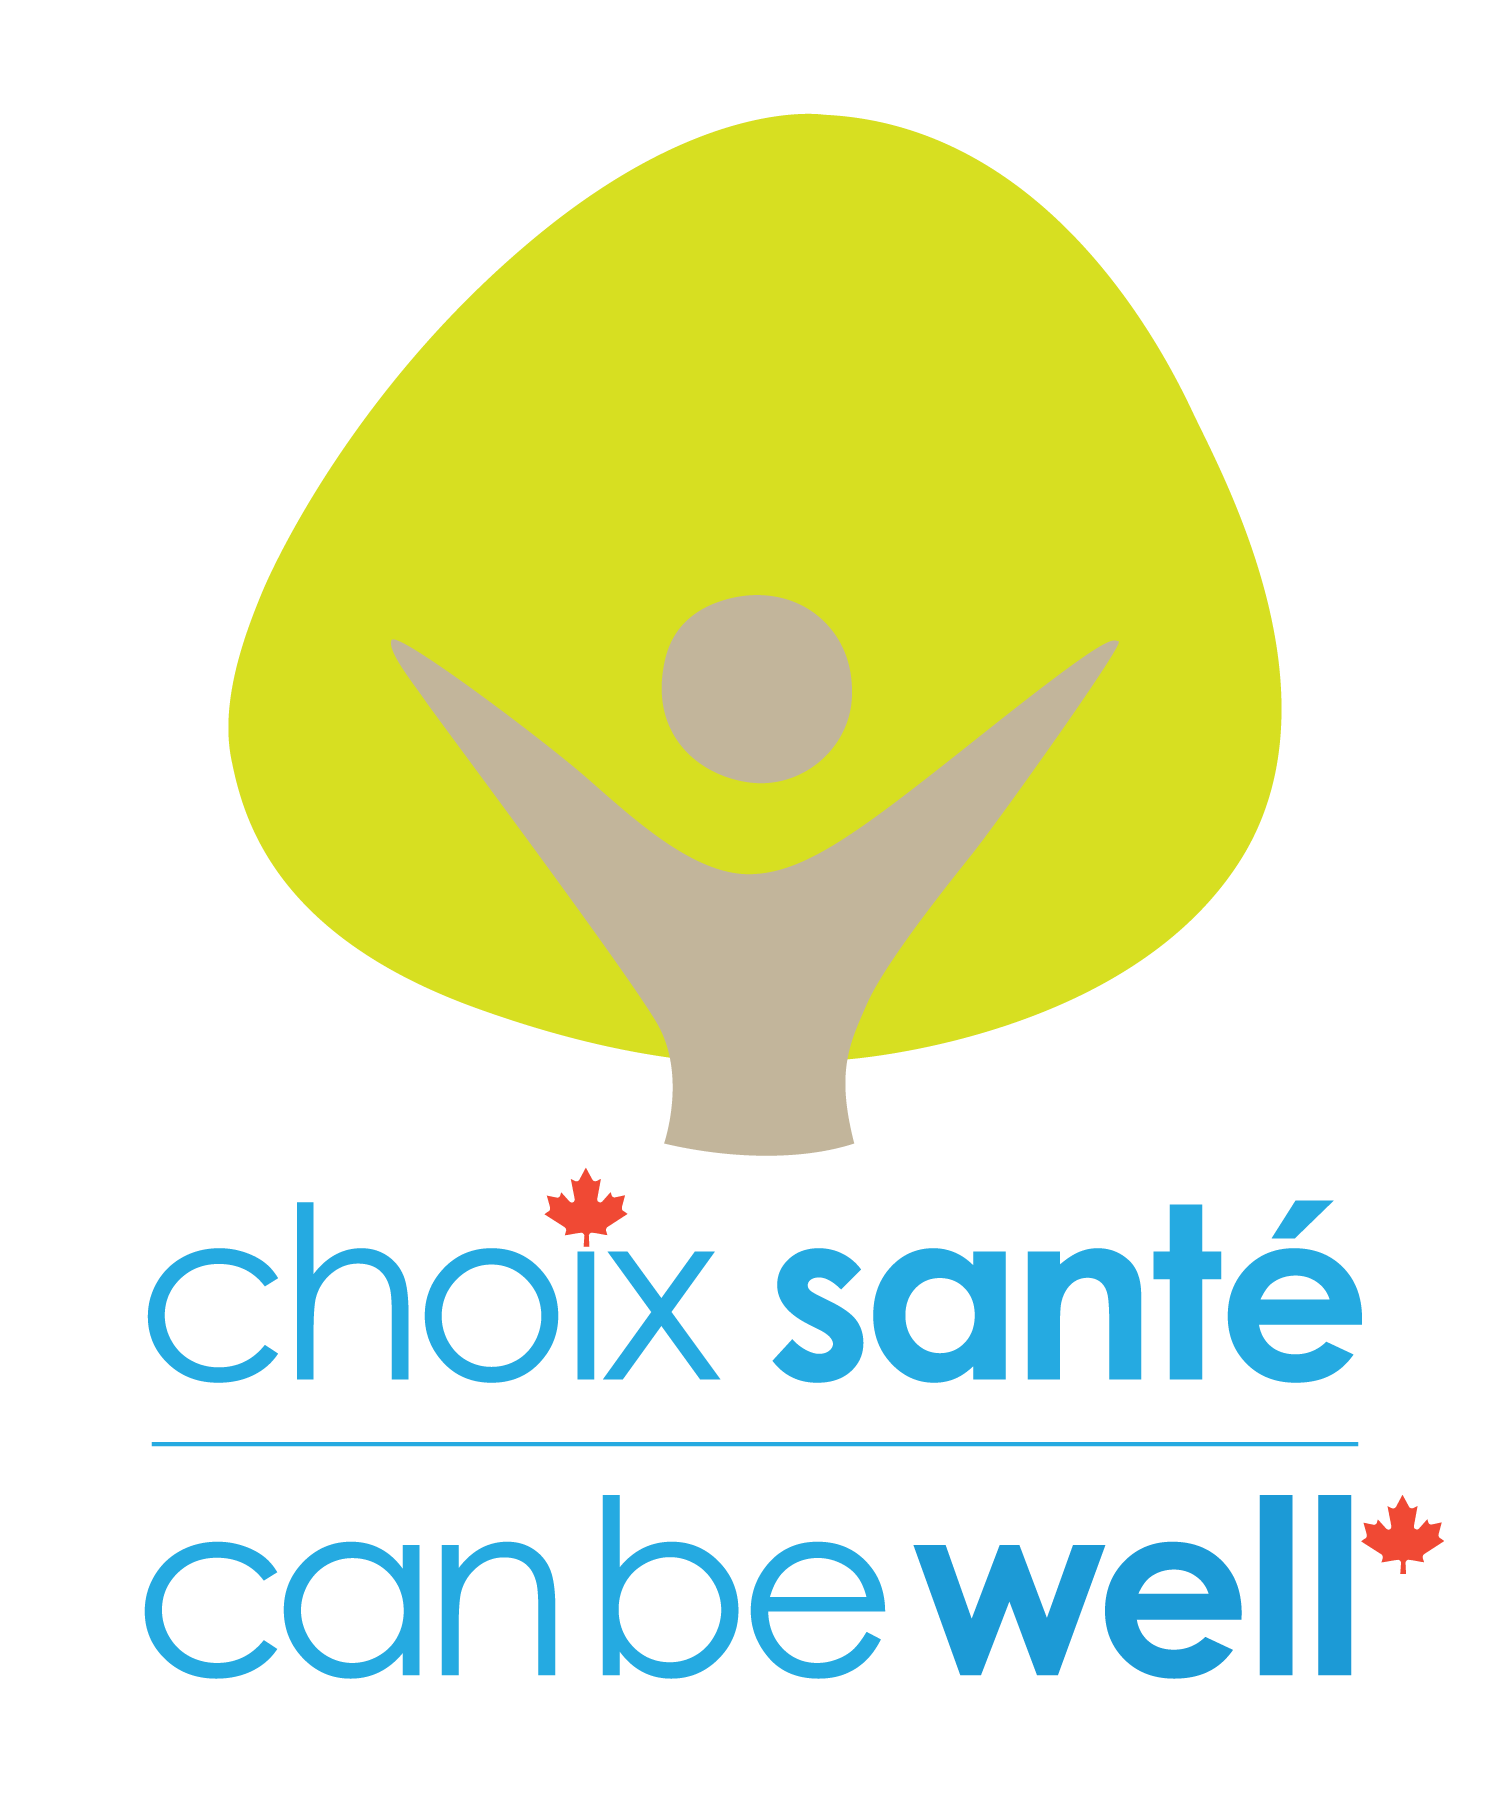 Canbewell Logo